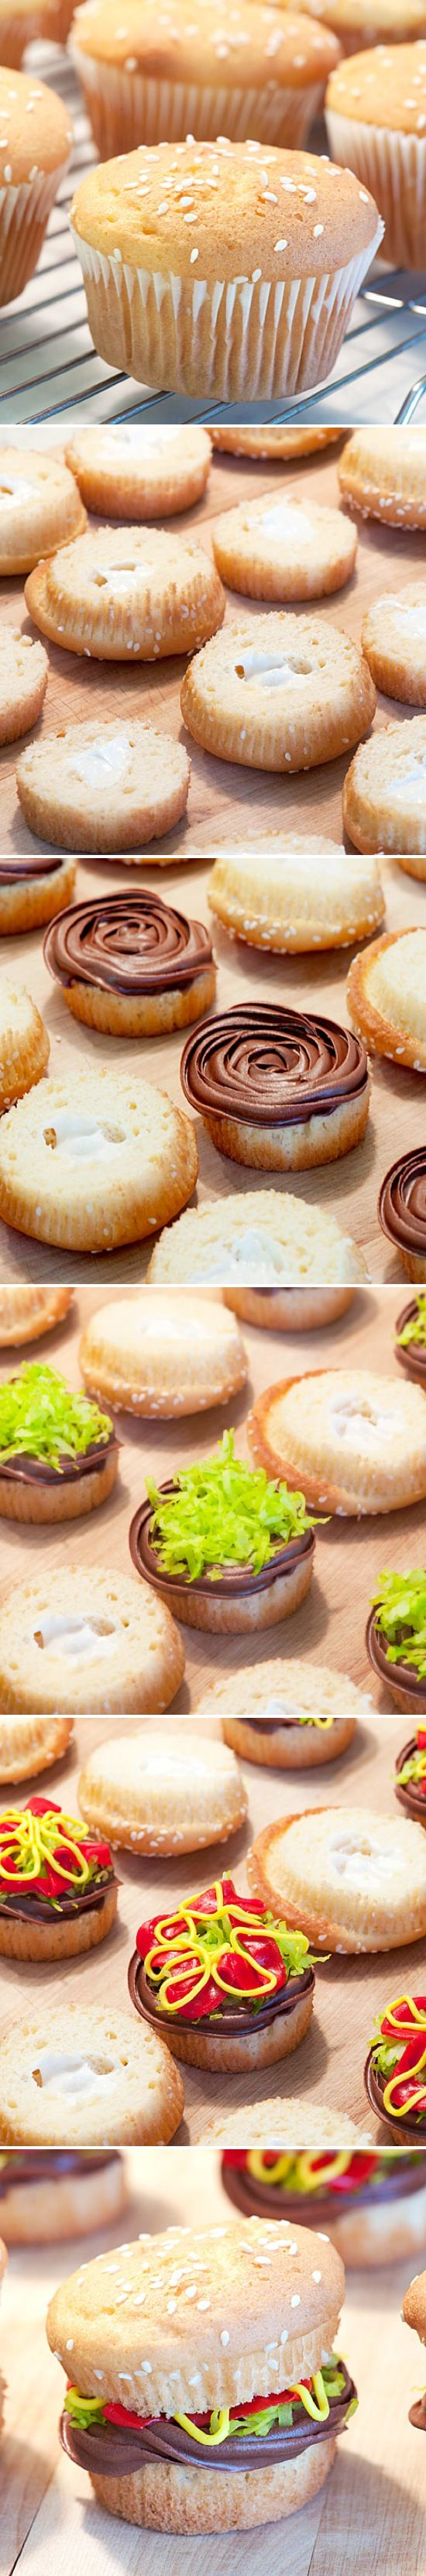 How to make burger cupcakes! So cool!